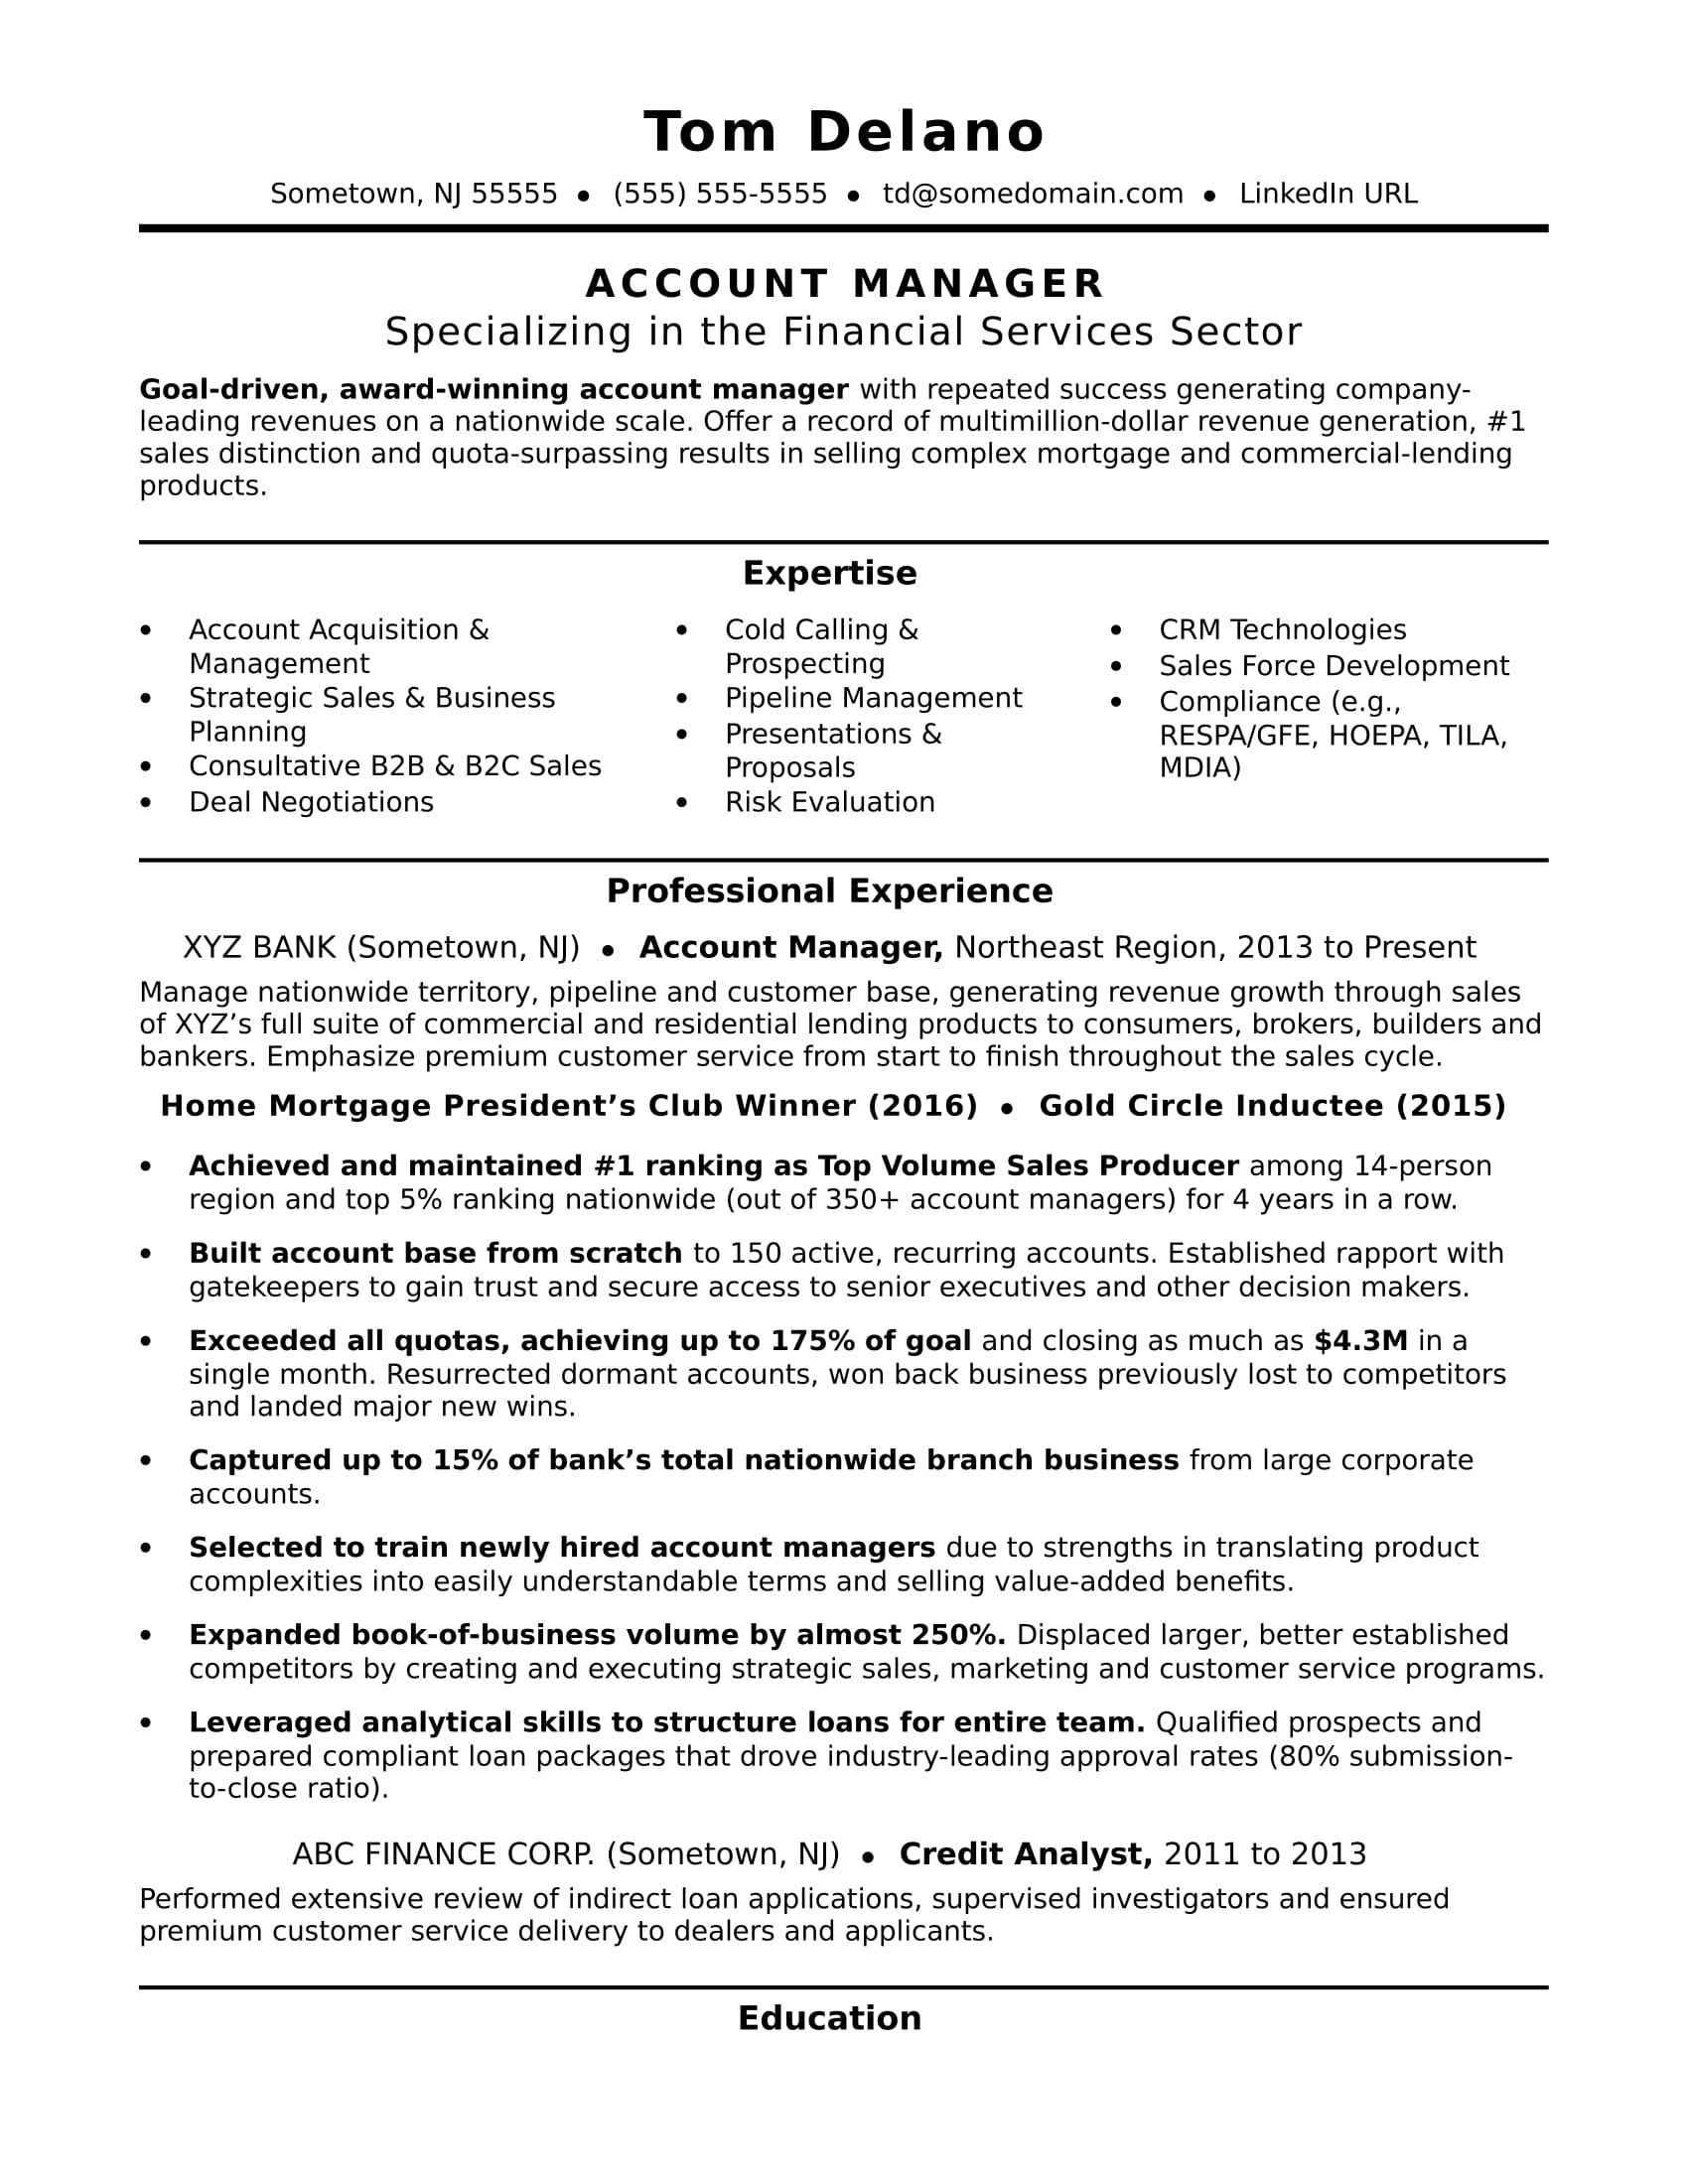 account manager resume sample monster technology irs example ivanka trump prince2 Resume Technology Account Manager Resume